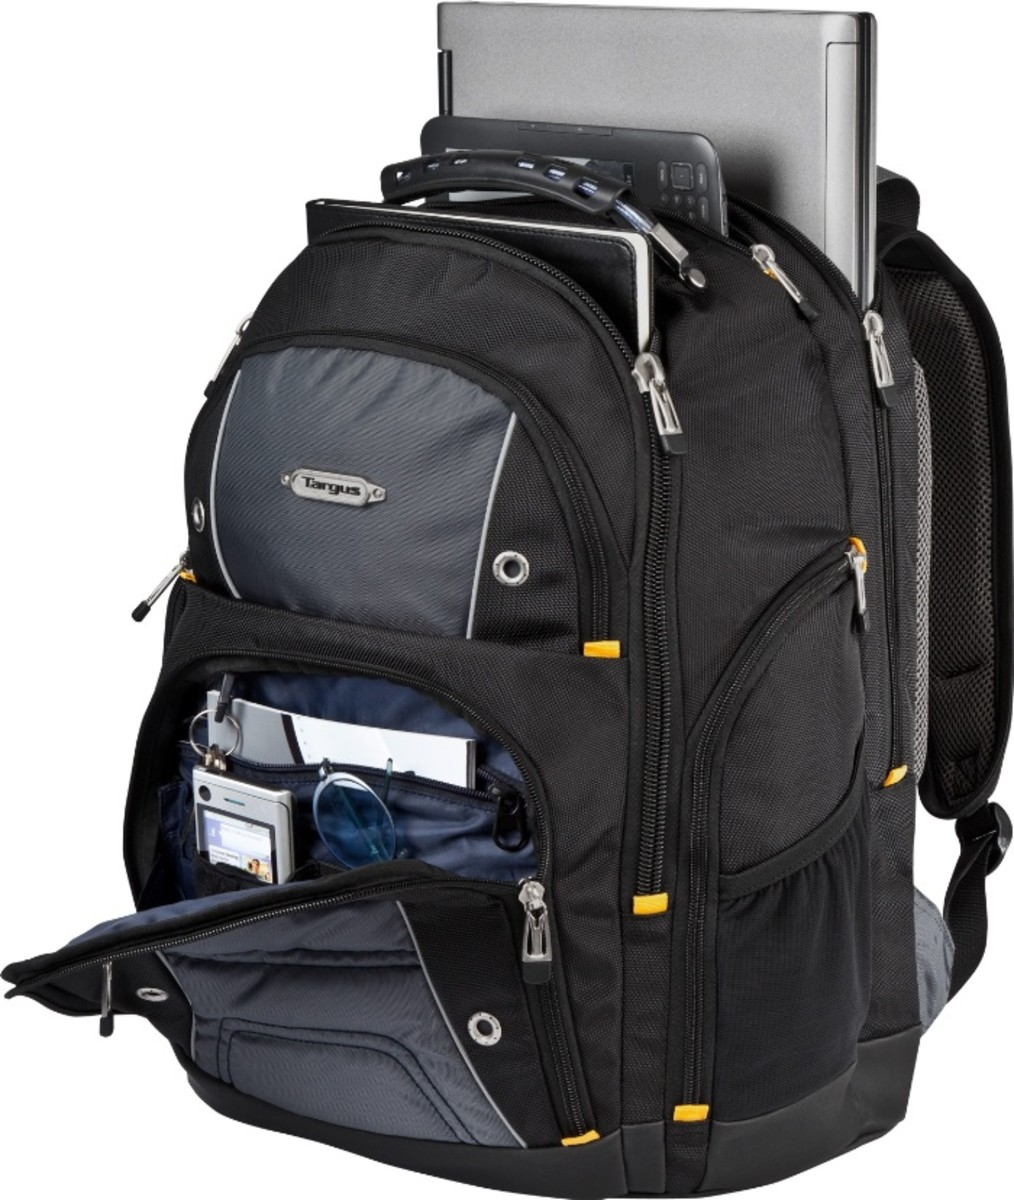 The 5 Best 17-Inch Laptop Backpacks